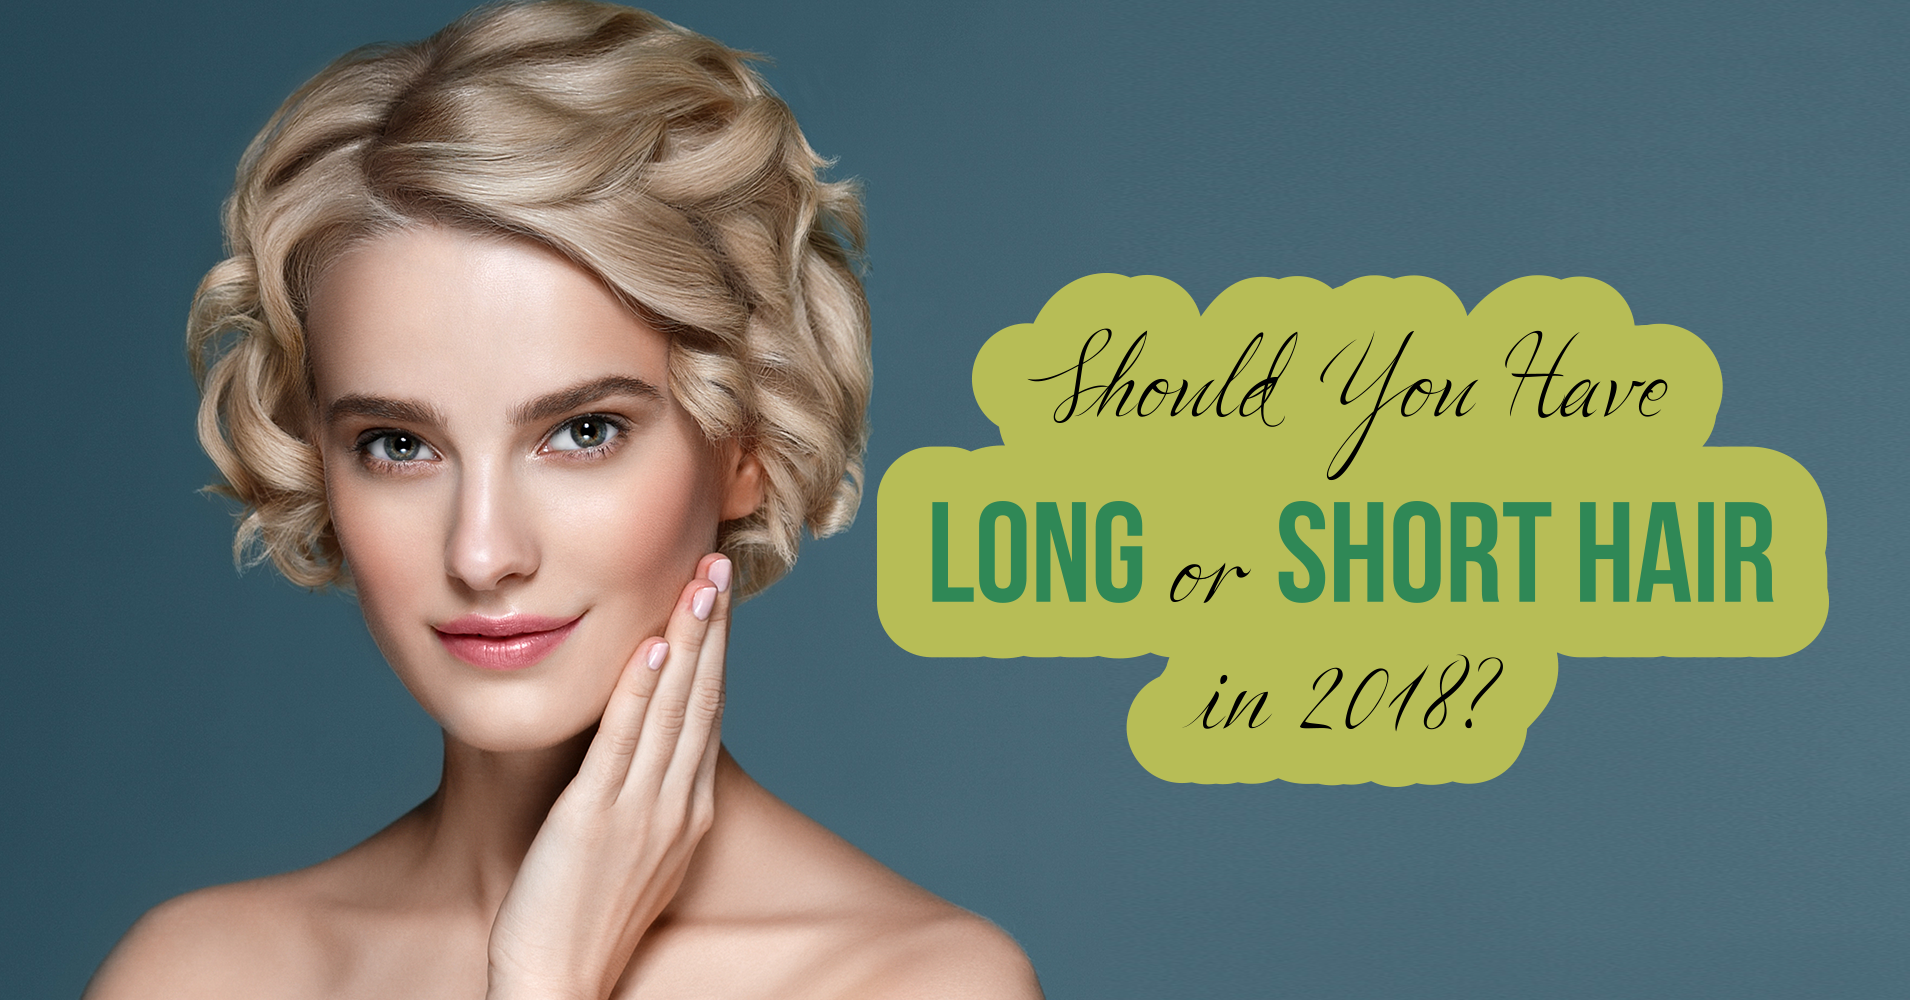 Should You Have Long Or Short Hair In 2018 Quiz Quizony Com